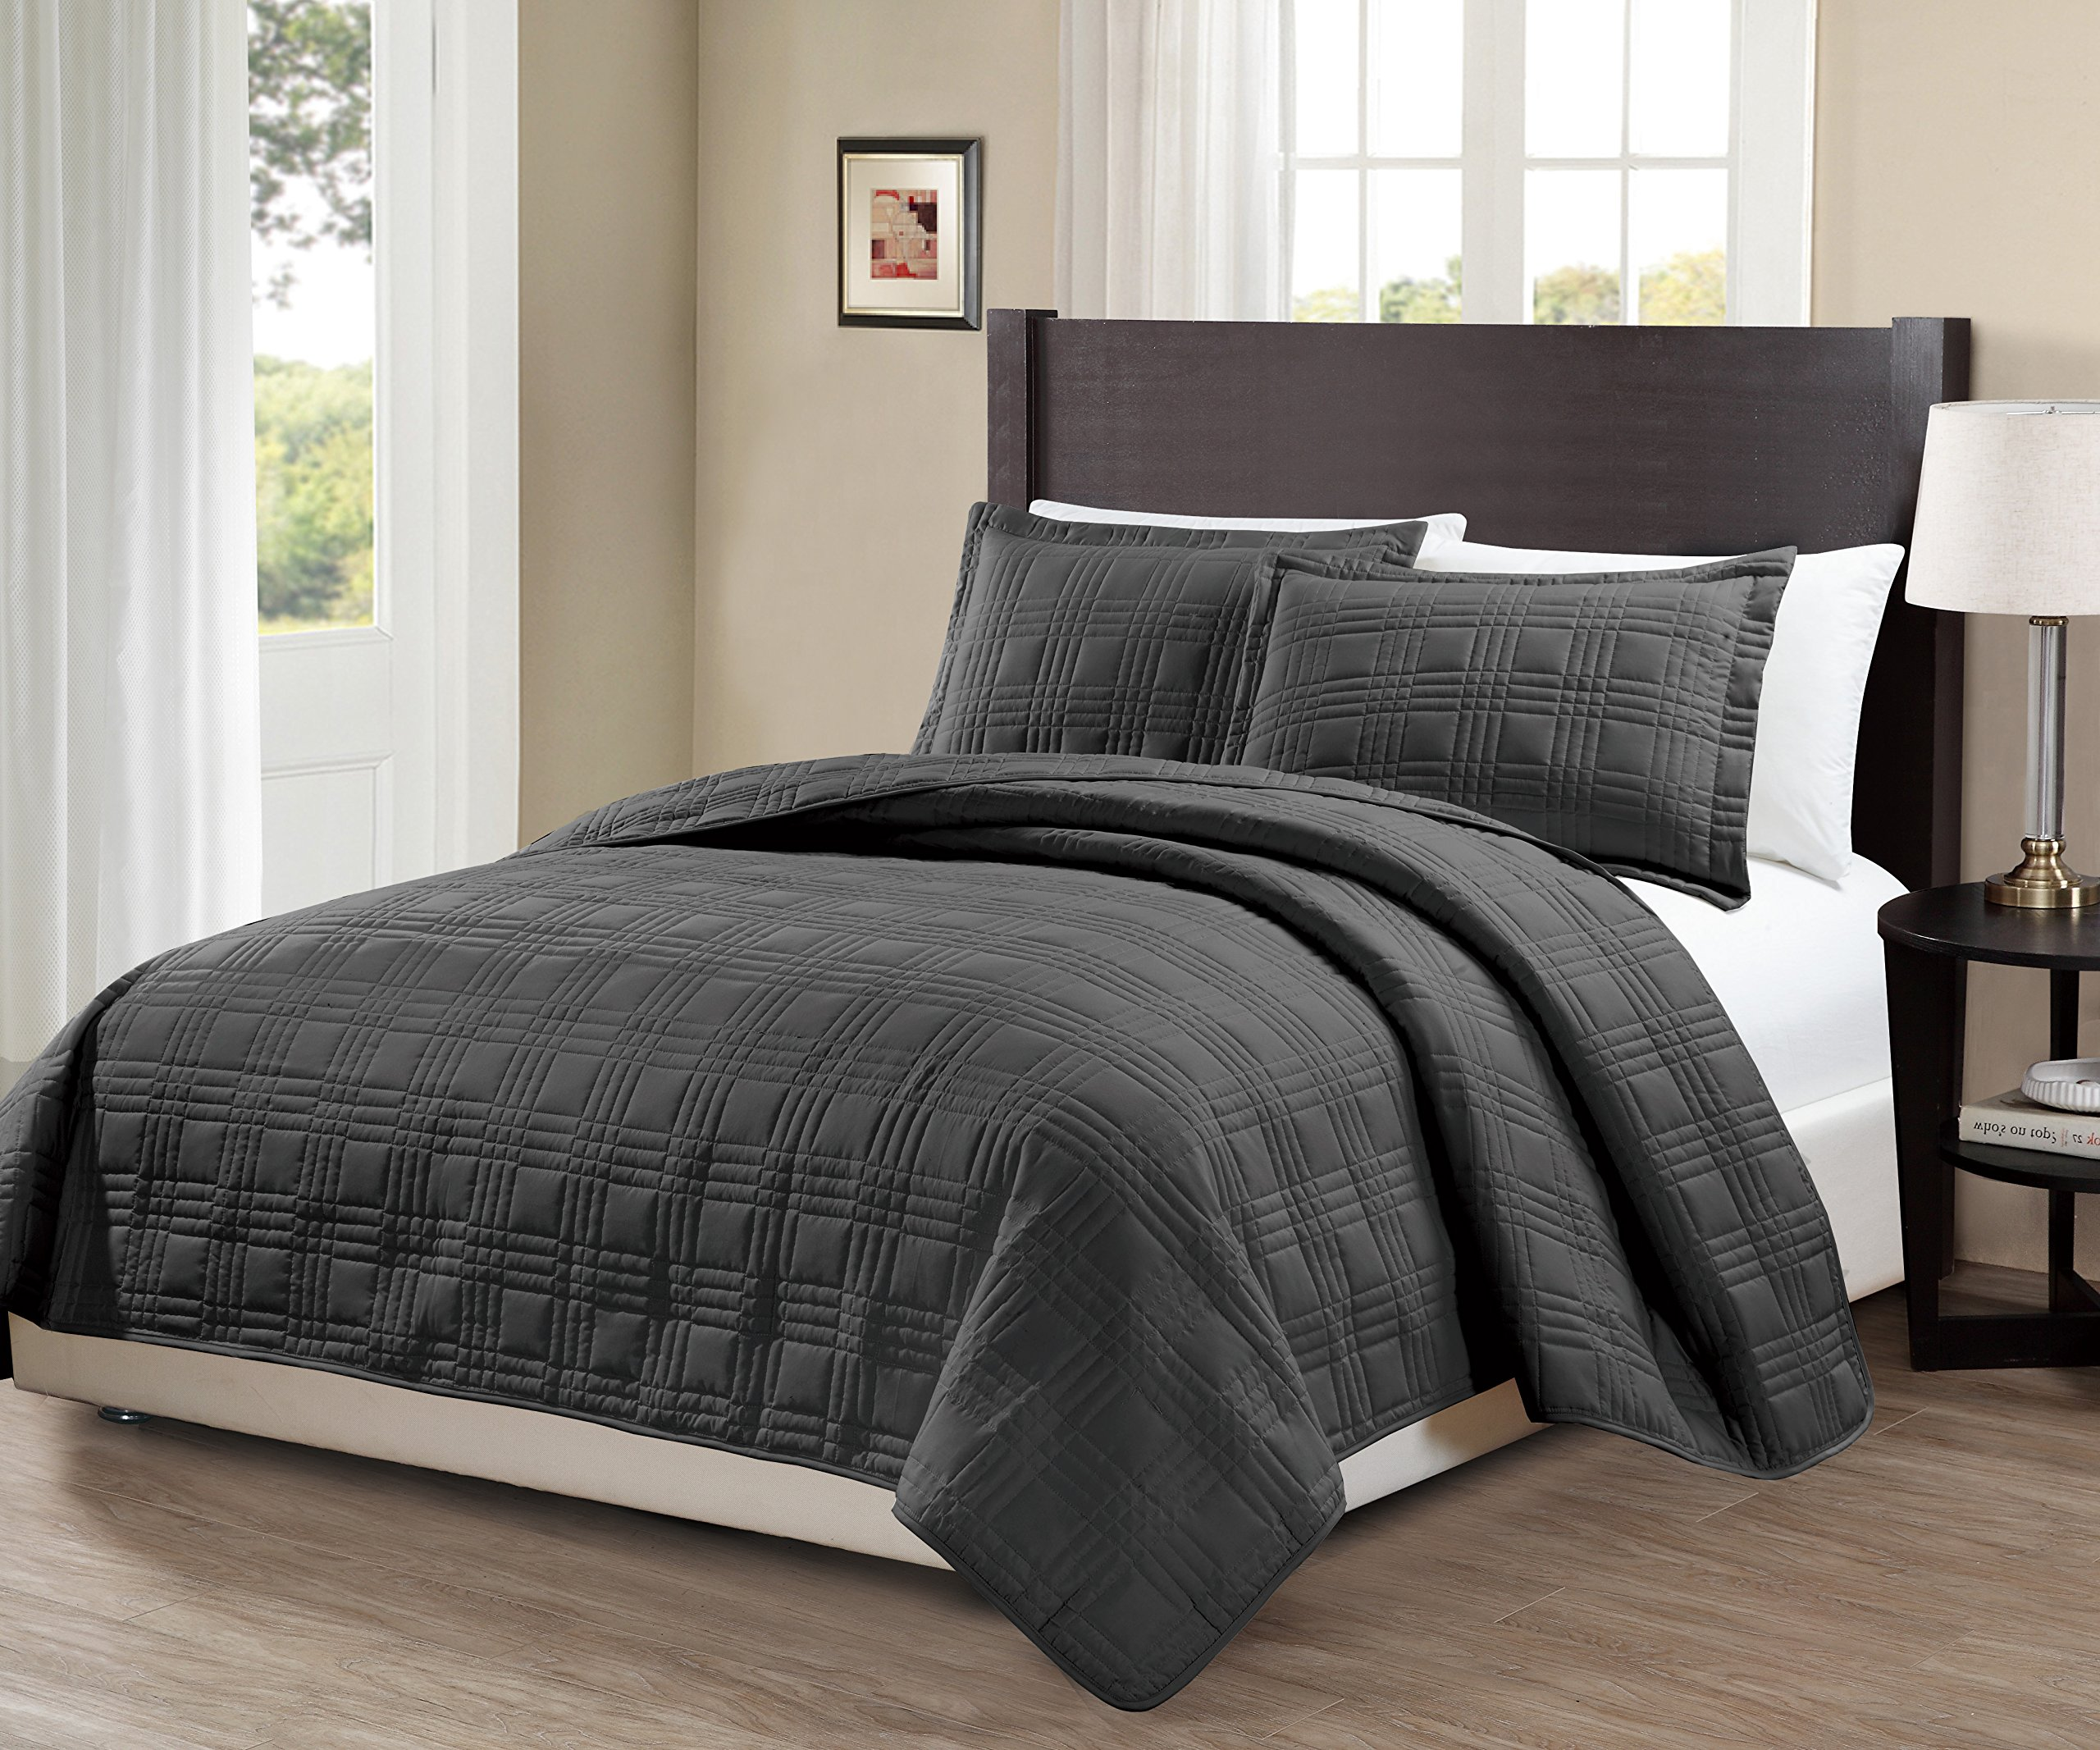 Fancy Collection 3pc King/California King Oversize Quilted Bedspread Coverlet Set Embroidery Solid Dark Gray/Charcoal New